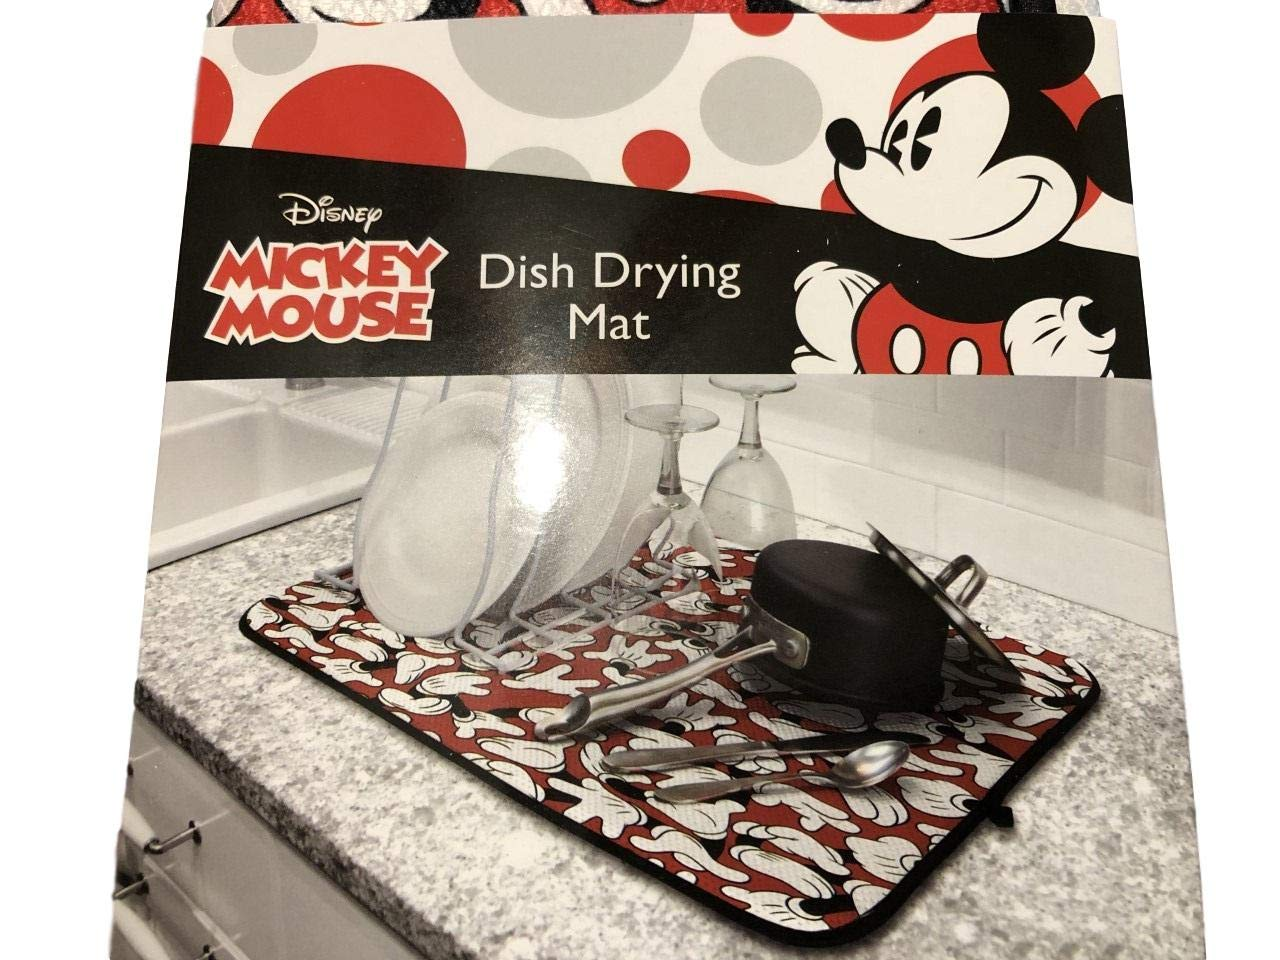 Mickey Mouse Dish Drying Mat, 16 x 18 inches